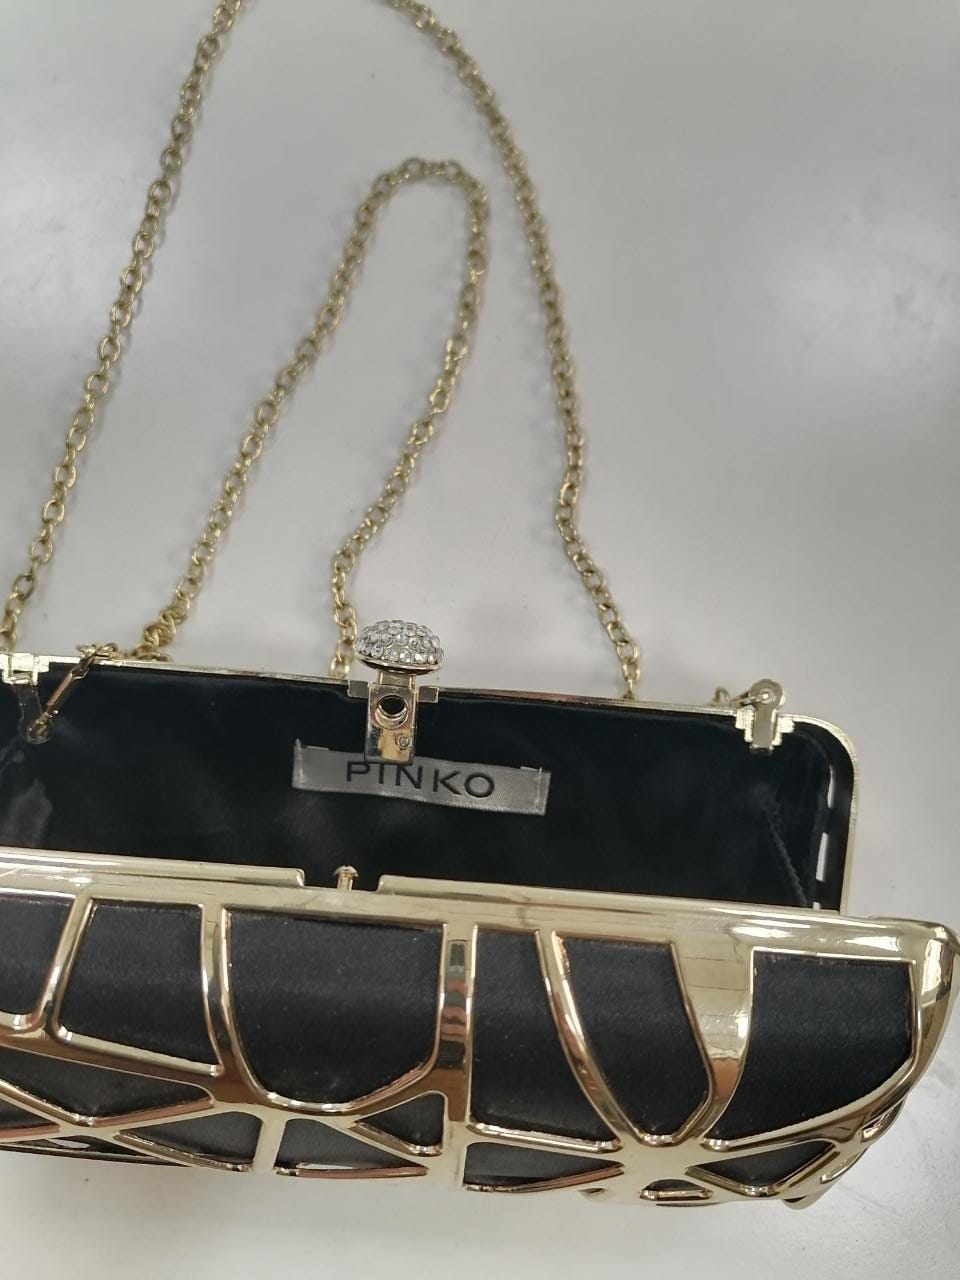 Accessory by Pinko